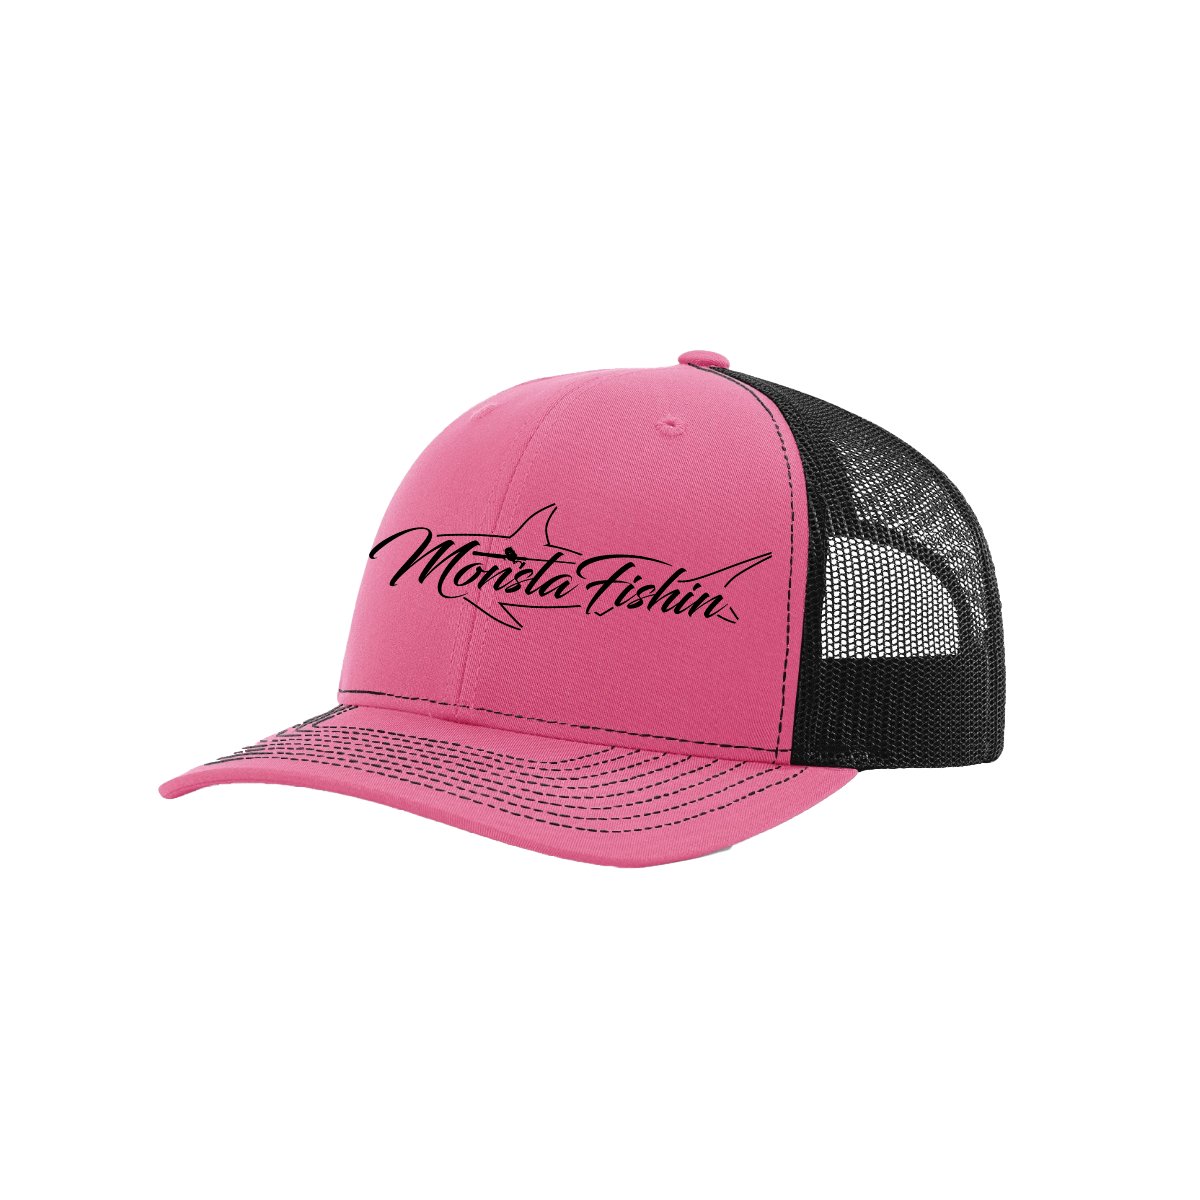 Monsta Hat Poppin' Pink